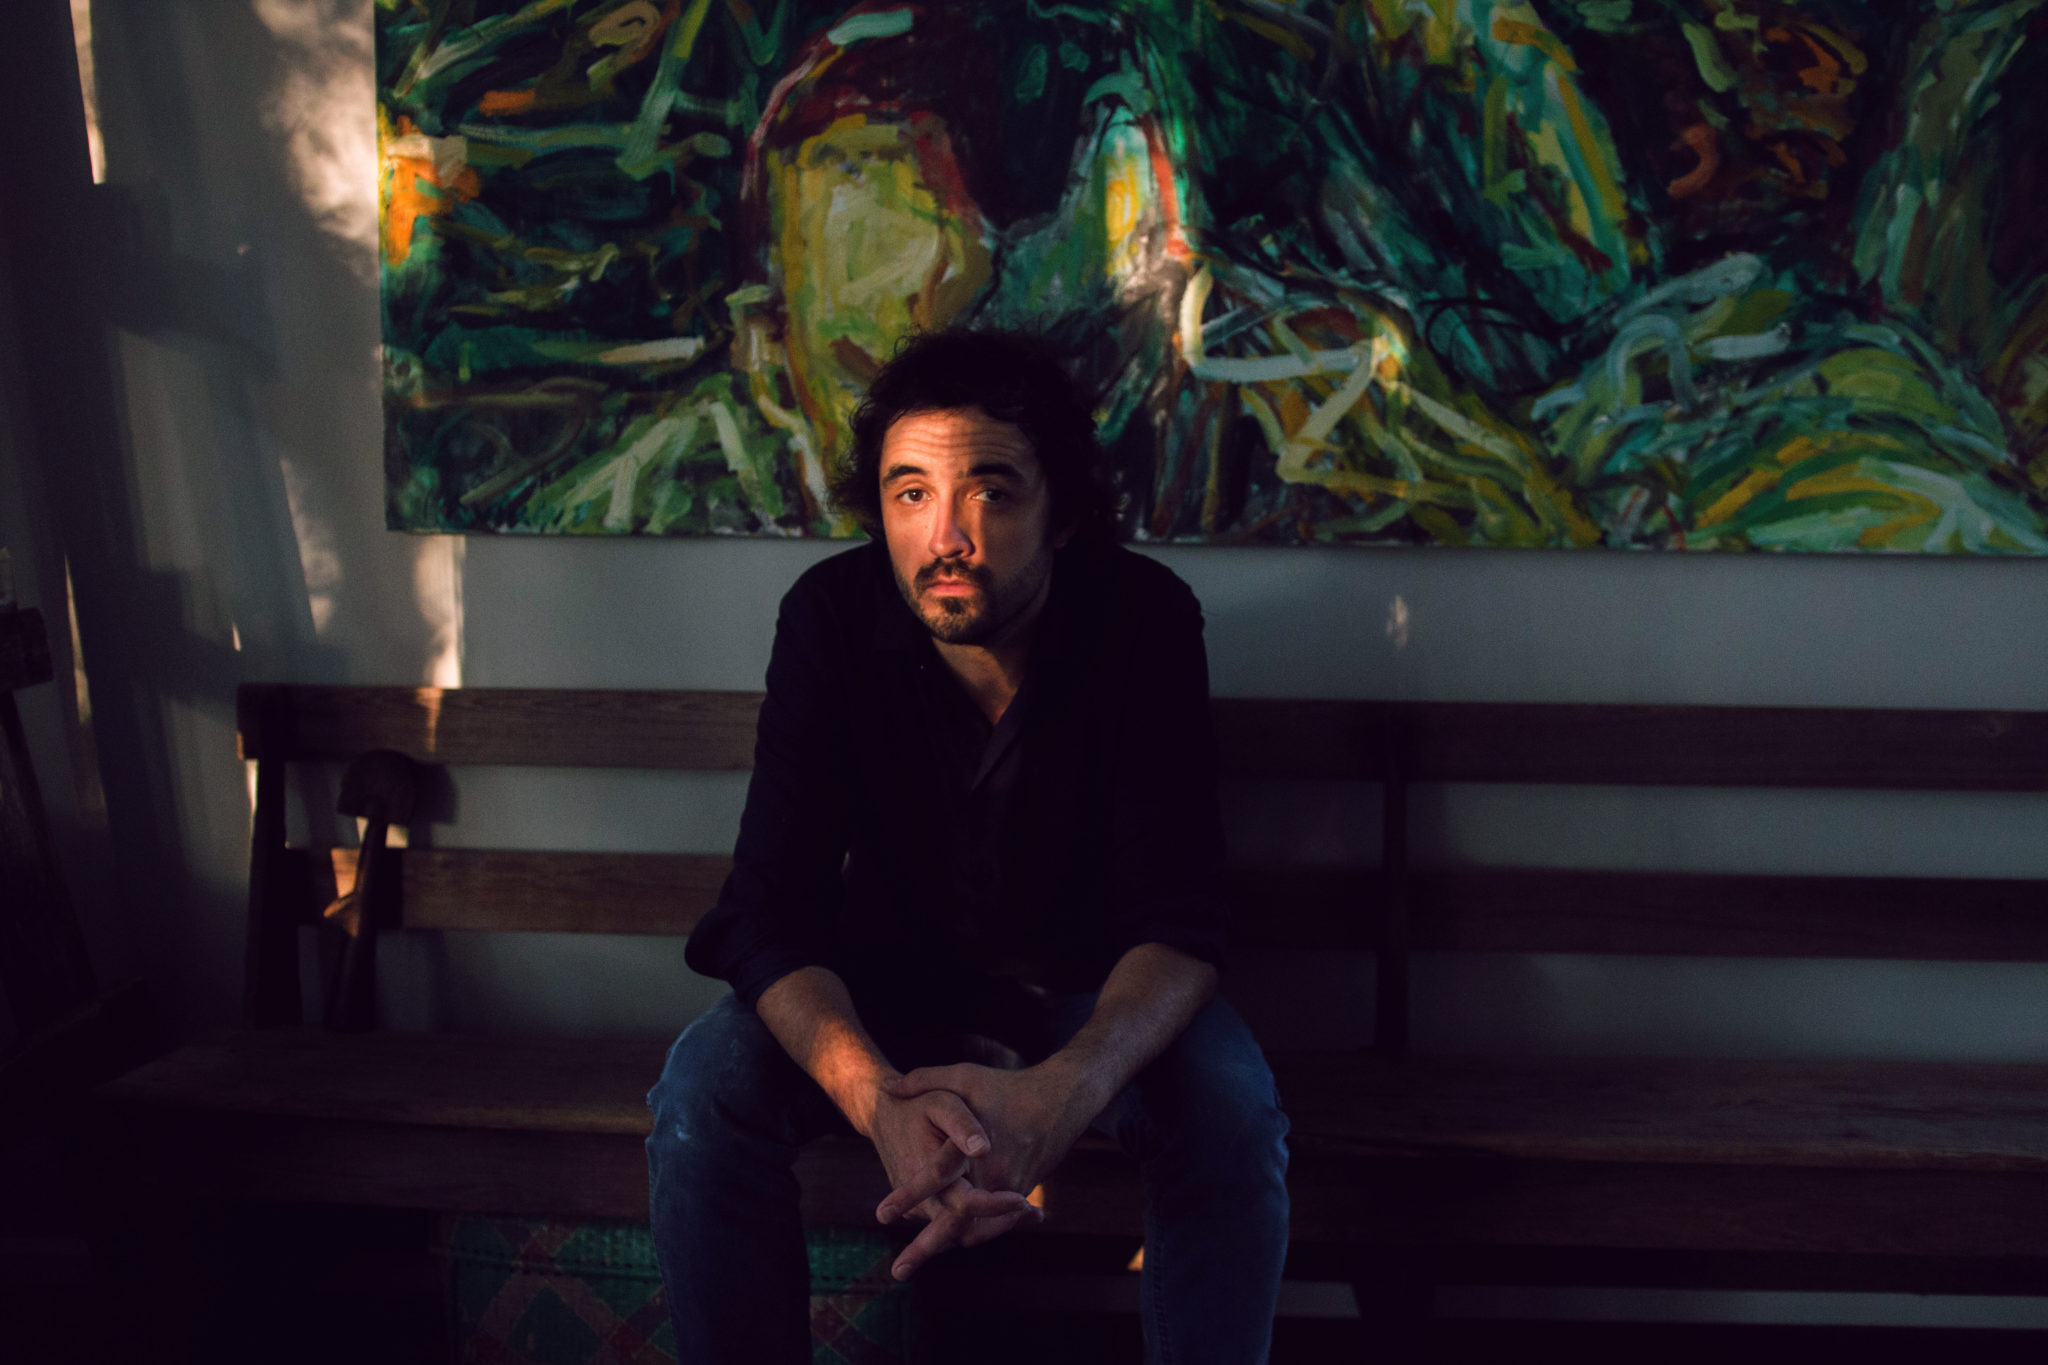 """PREMIERE: Peter More brings timeless folk-rock with """"In The Basement"""""""